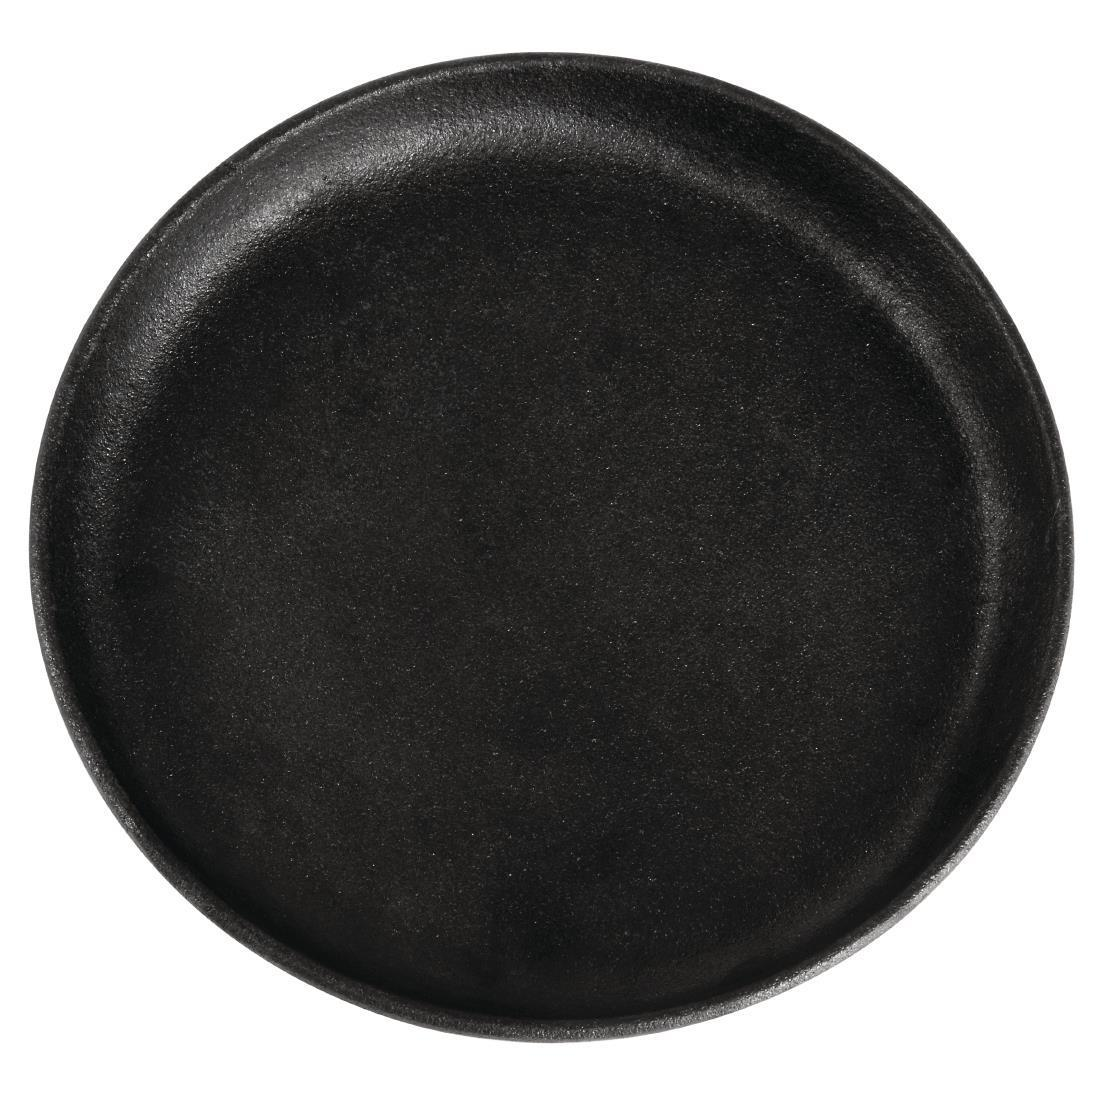 Olympia Round Cast Iron Sizzle Platter